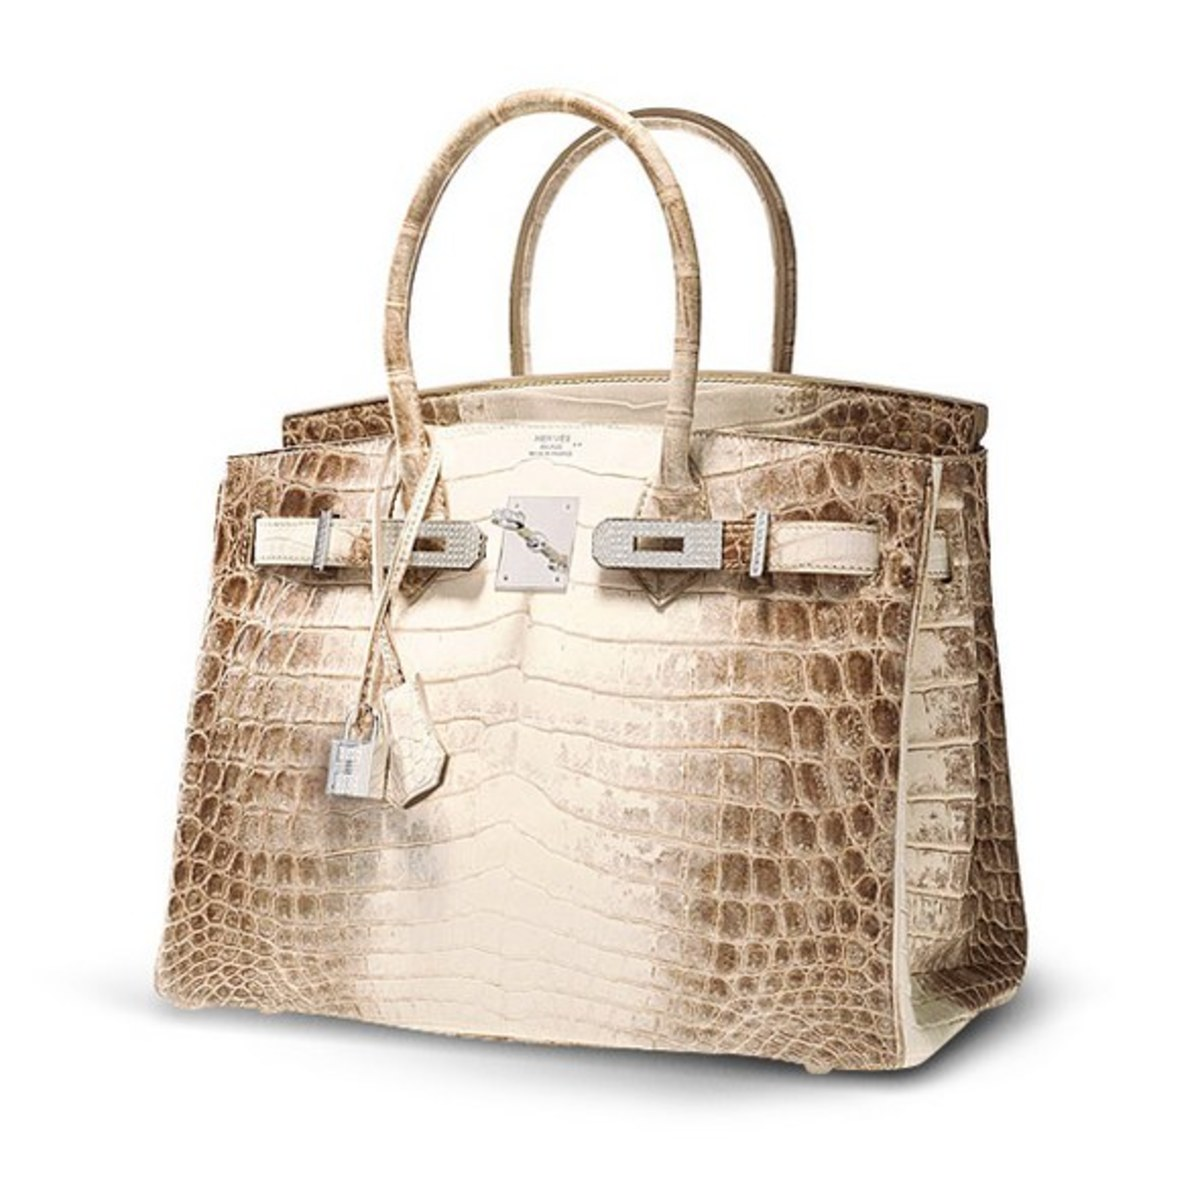 One of the most expensive Birkin ever created!